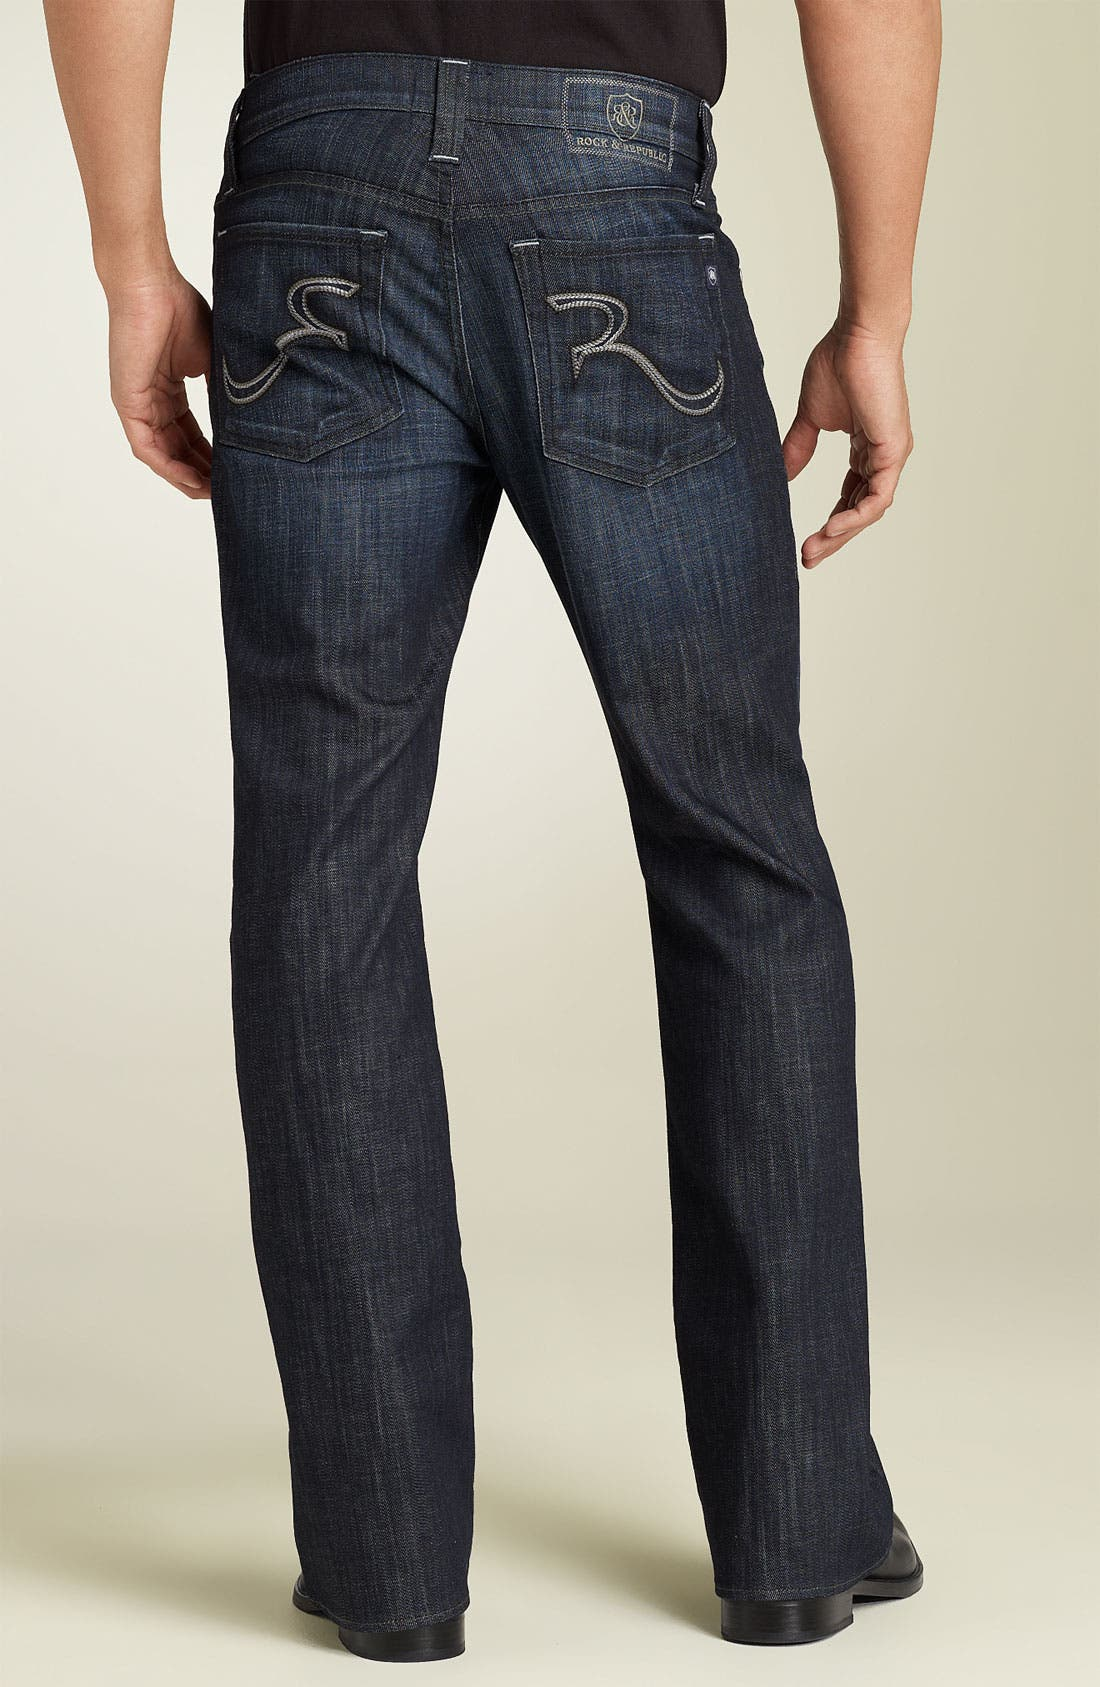 ROCK & REPUBLIC,                             'Henlee' Bootcut Jeans,                             Main thumbnail 1, color,                             400